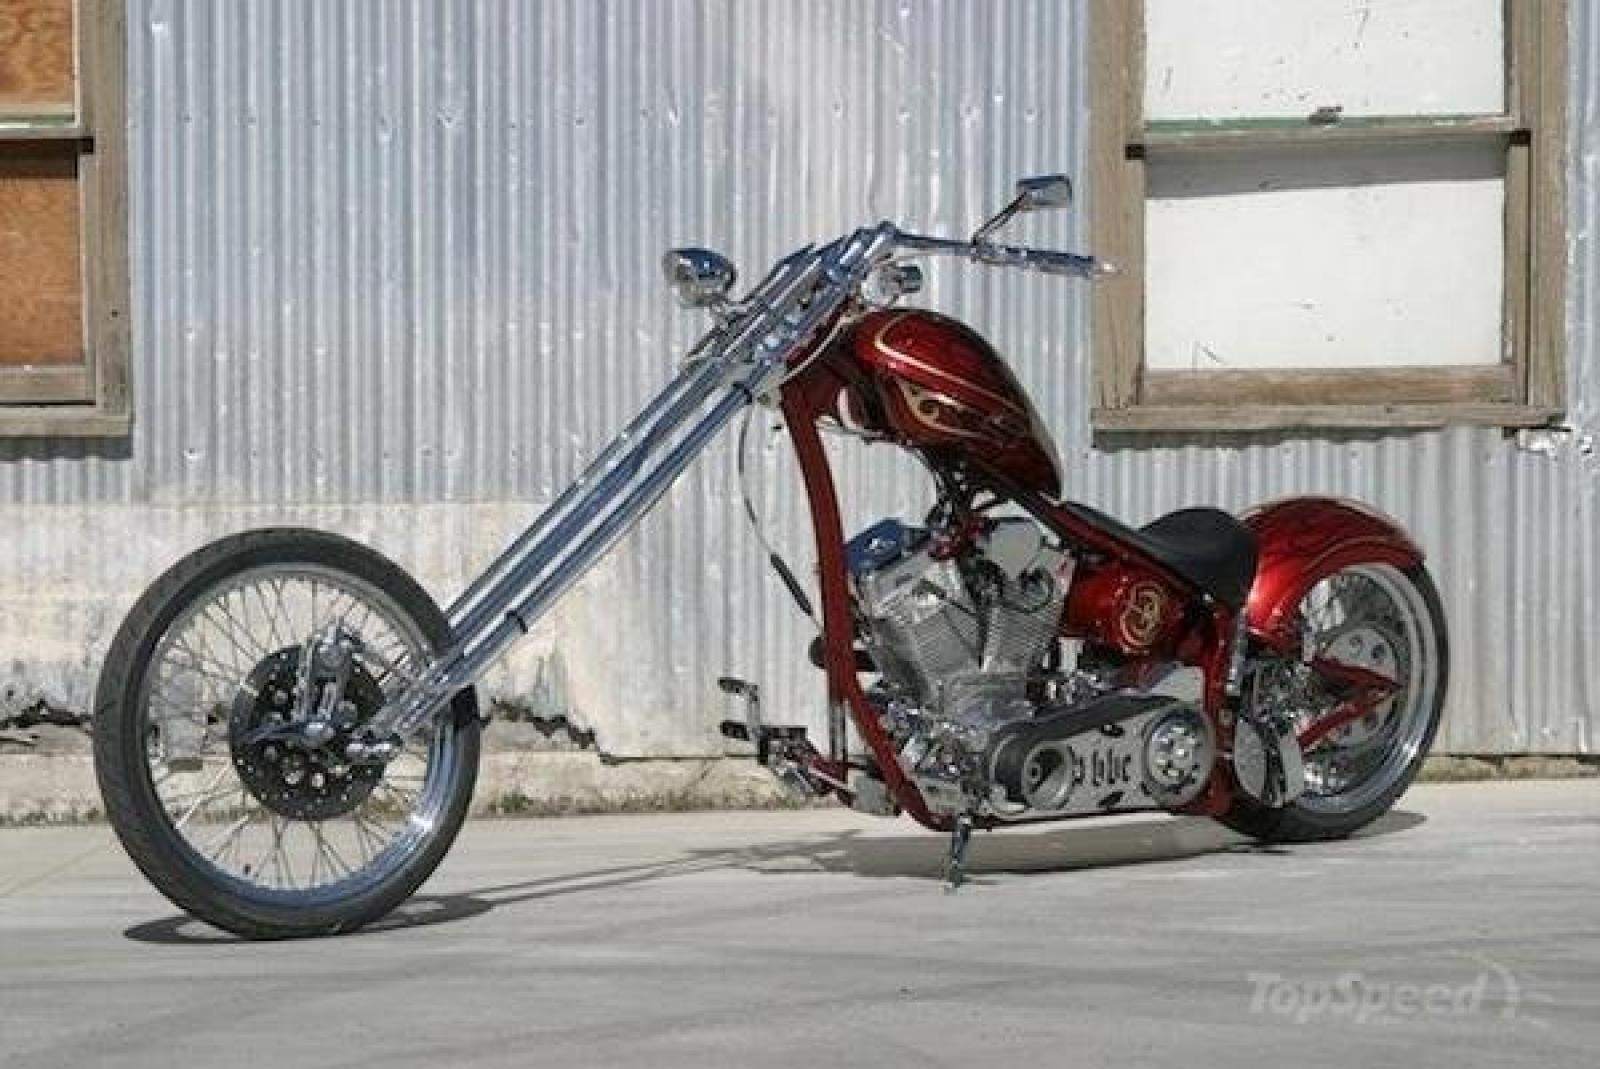 Big Bear Choppers Merc Softail 100 Smooth Carb 2010 images #63767